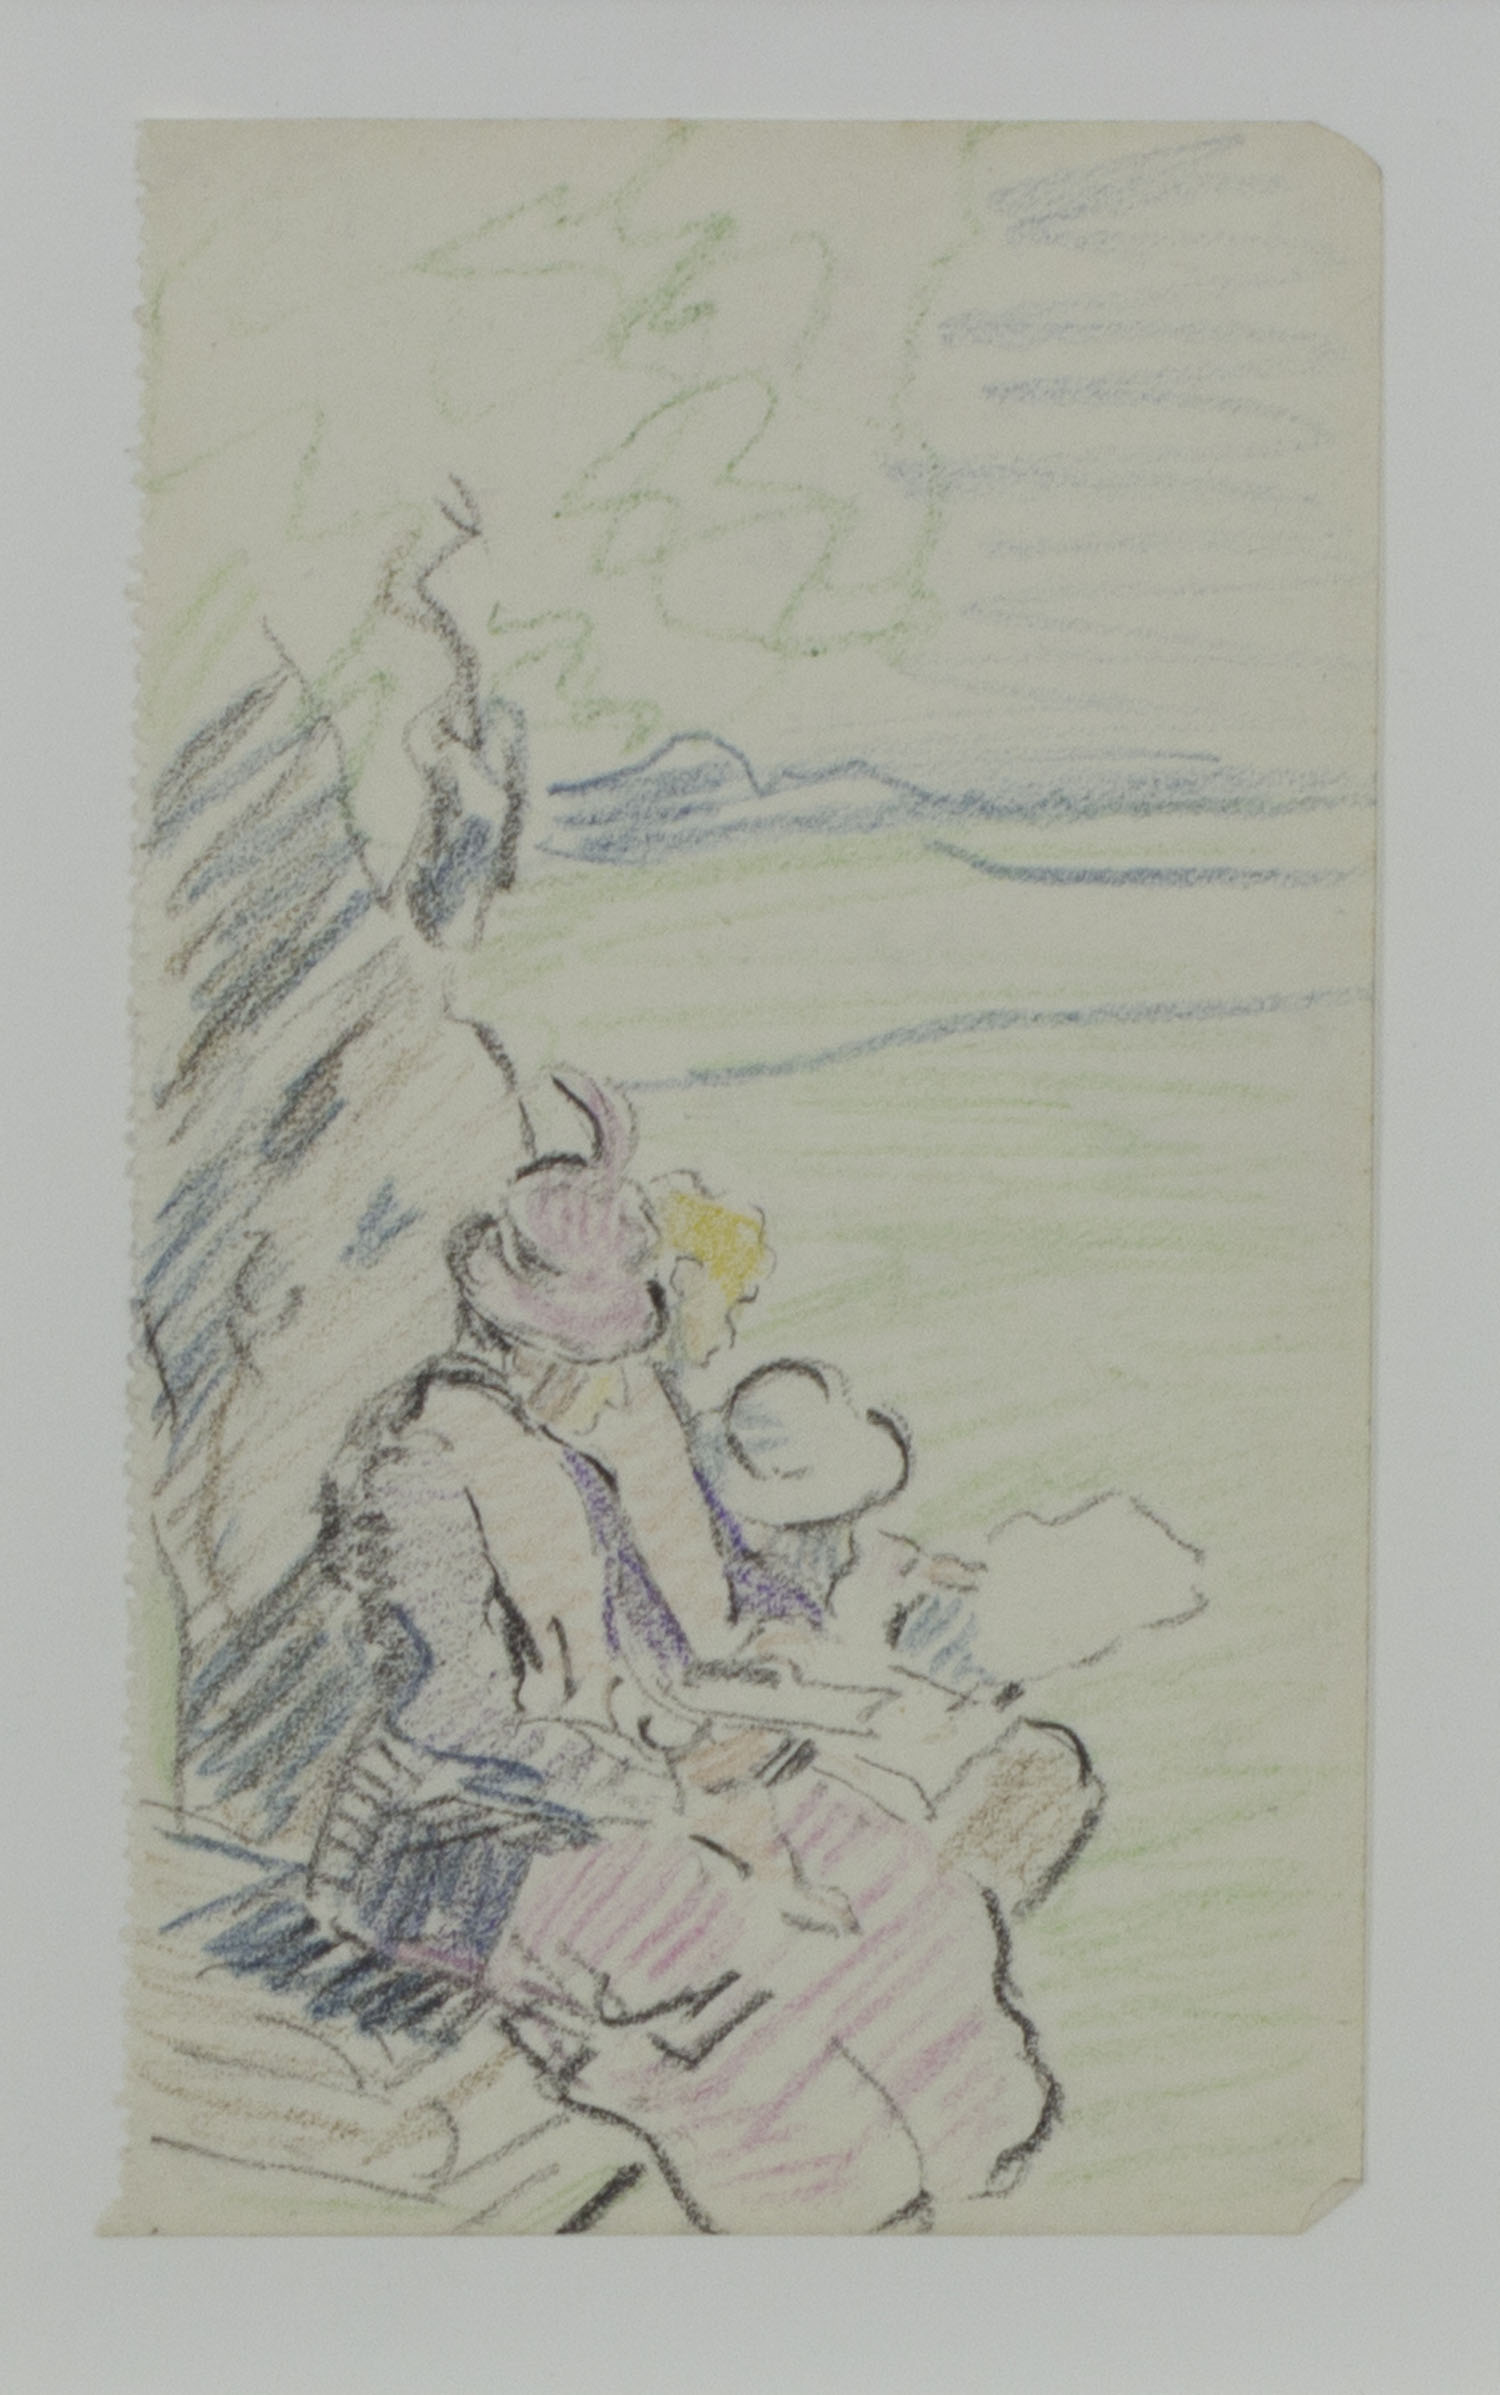 Mary Swanzy 'Sketching Party' c. 1905 coloured pencil drawing 14x9cm.jpg